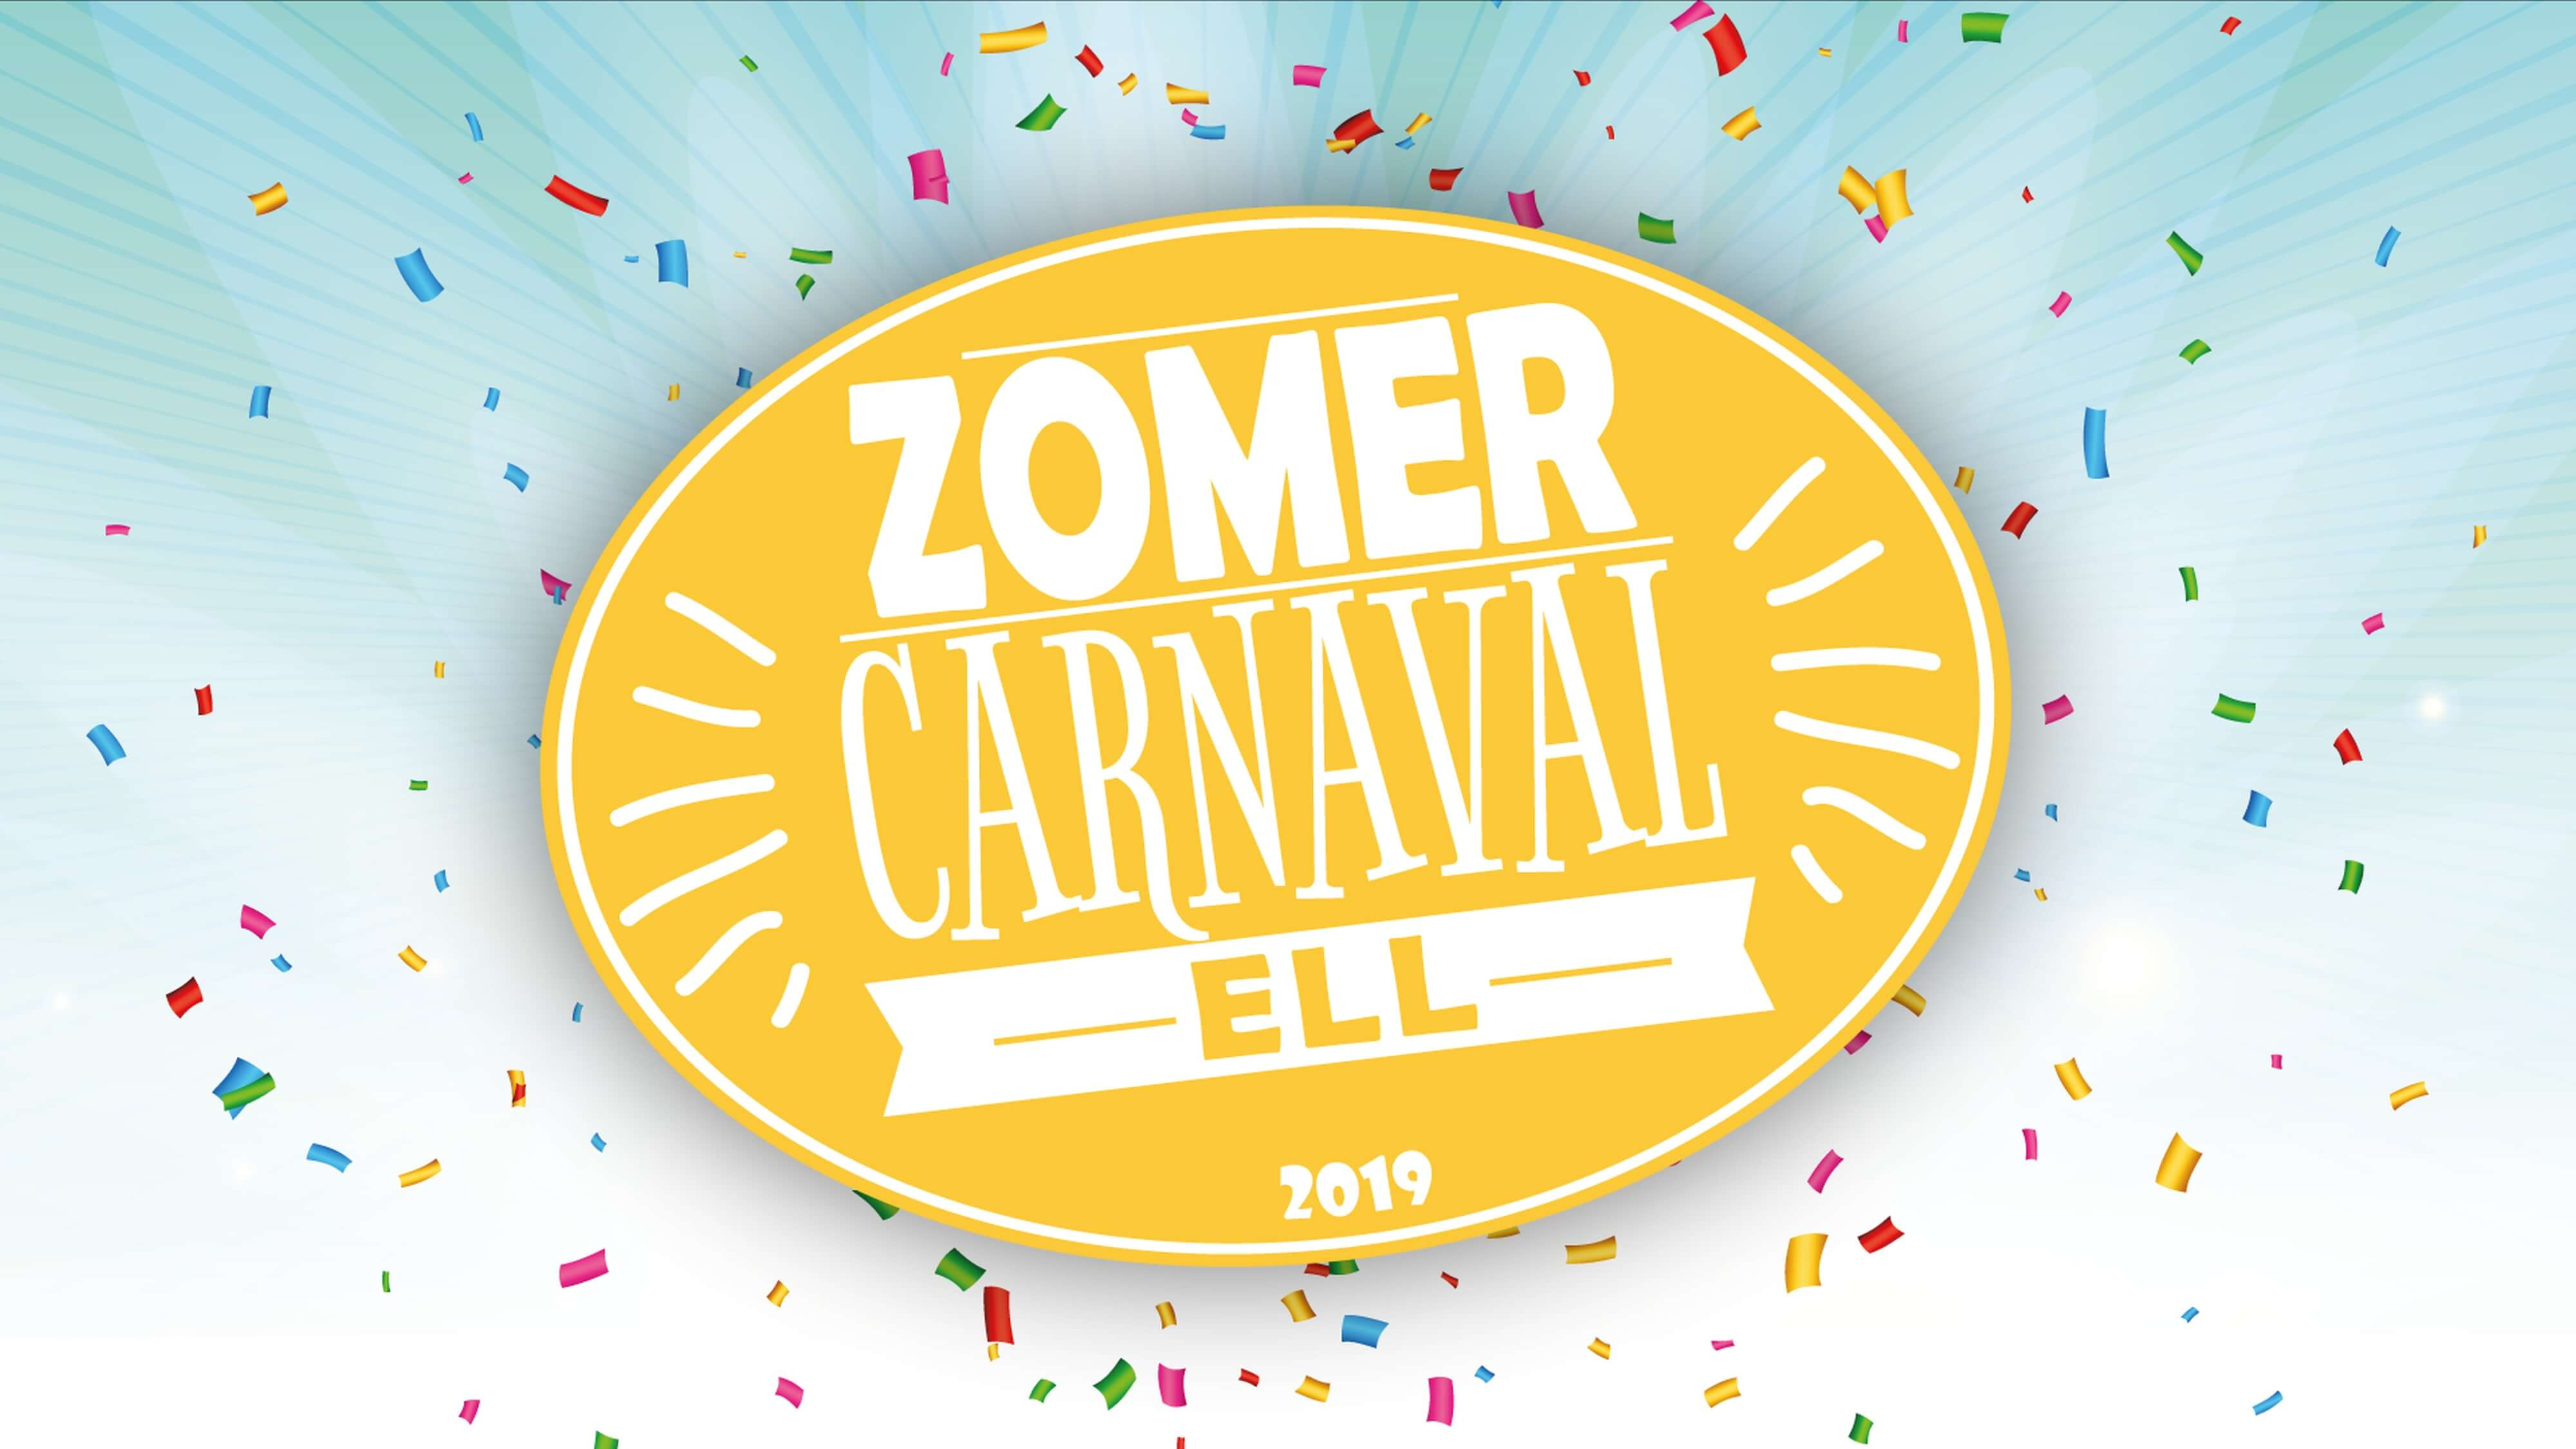 ZOMERCARNAVAL ELL